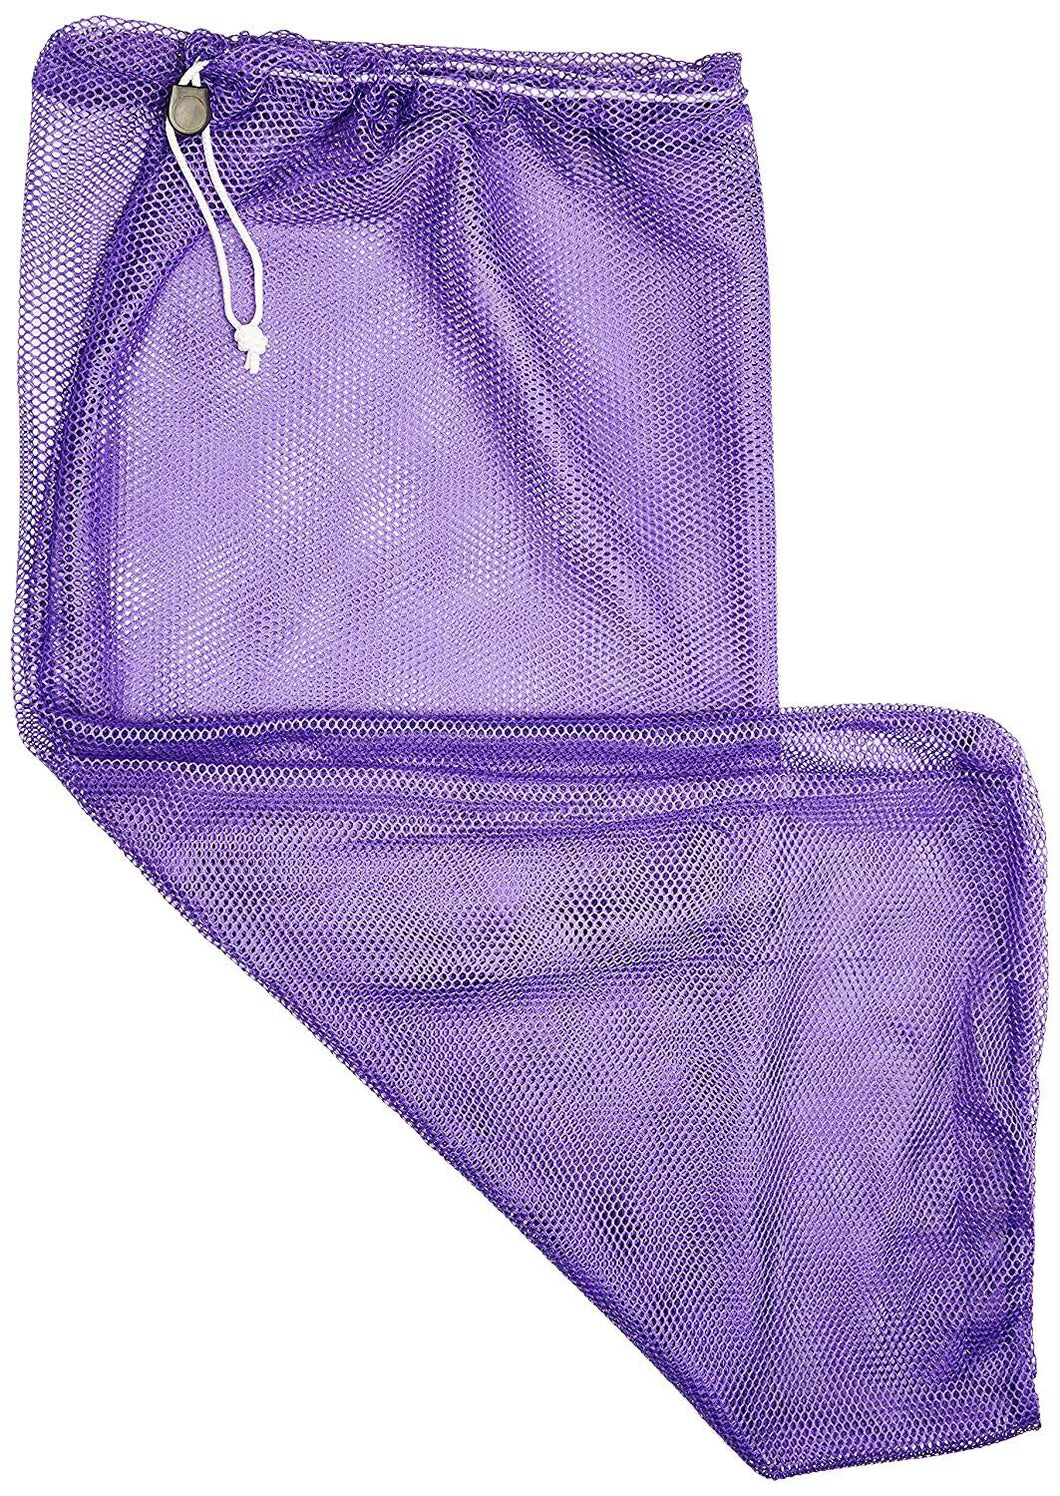 BSN Sports Heavy-Duty Mesh Equipment Bag, Purple